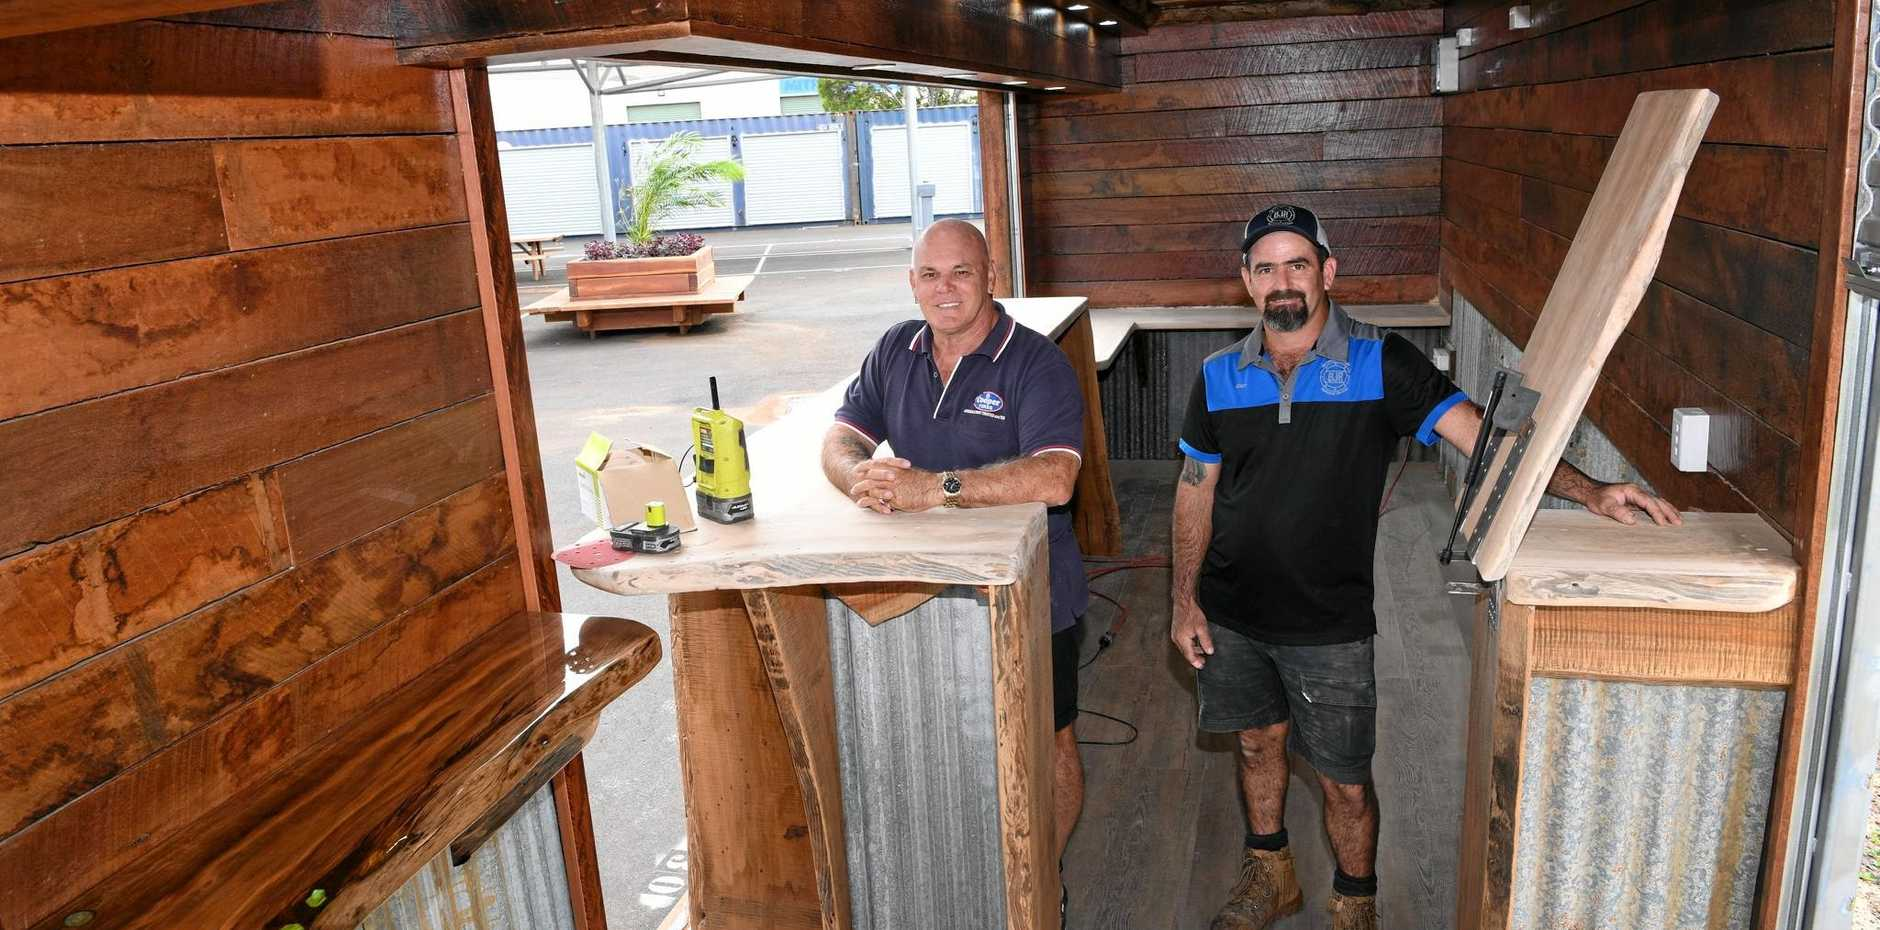 FINISHING TOUCHES: Cliff Crampton and Ben Rebbeck inside the bar at Lana's Farmers Market.